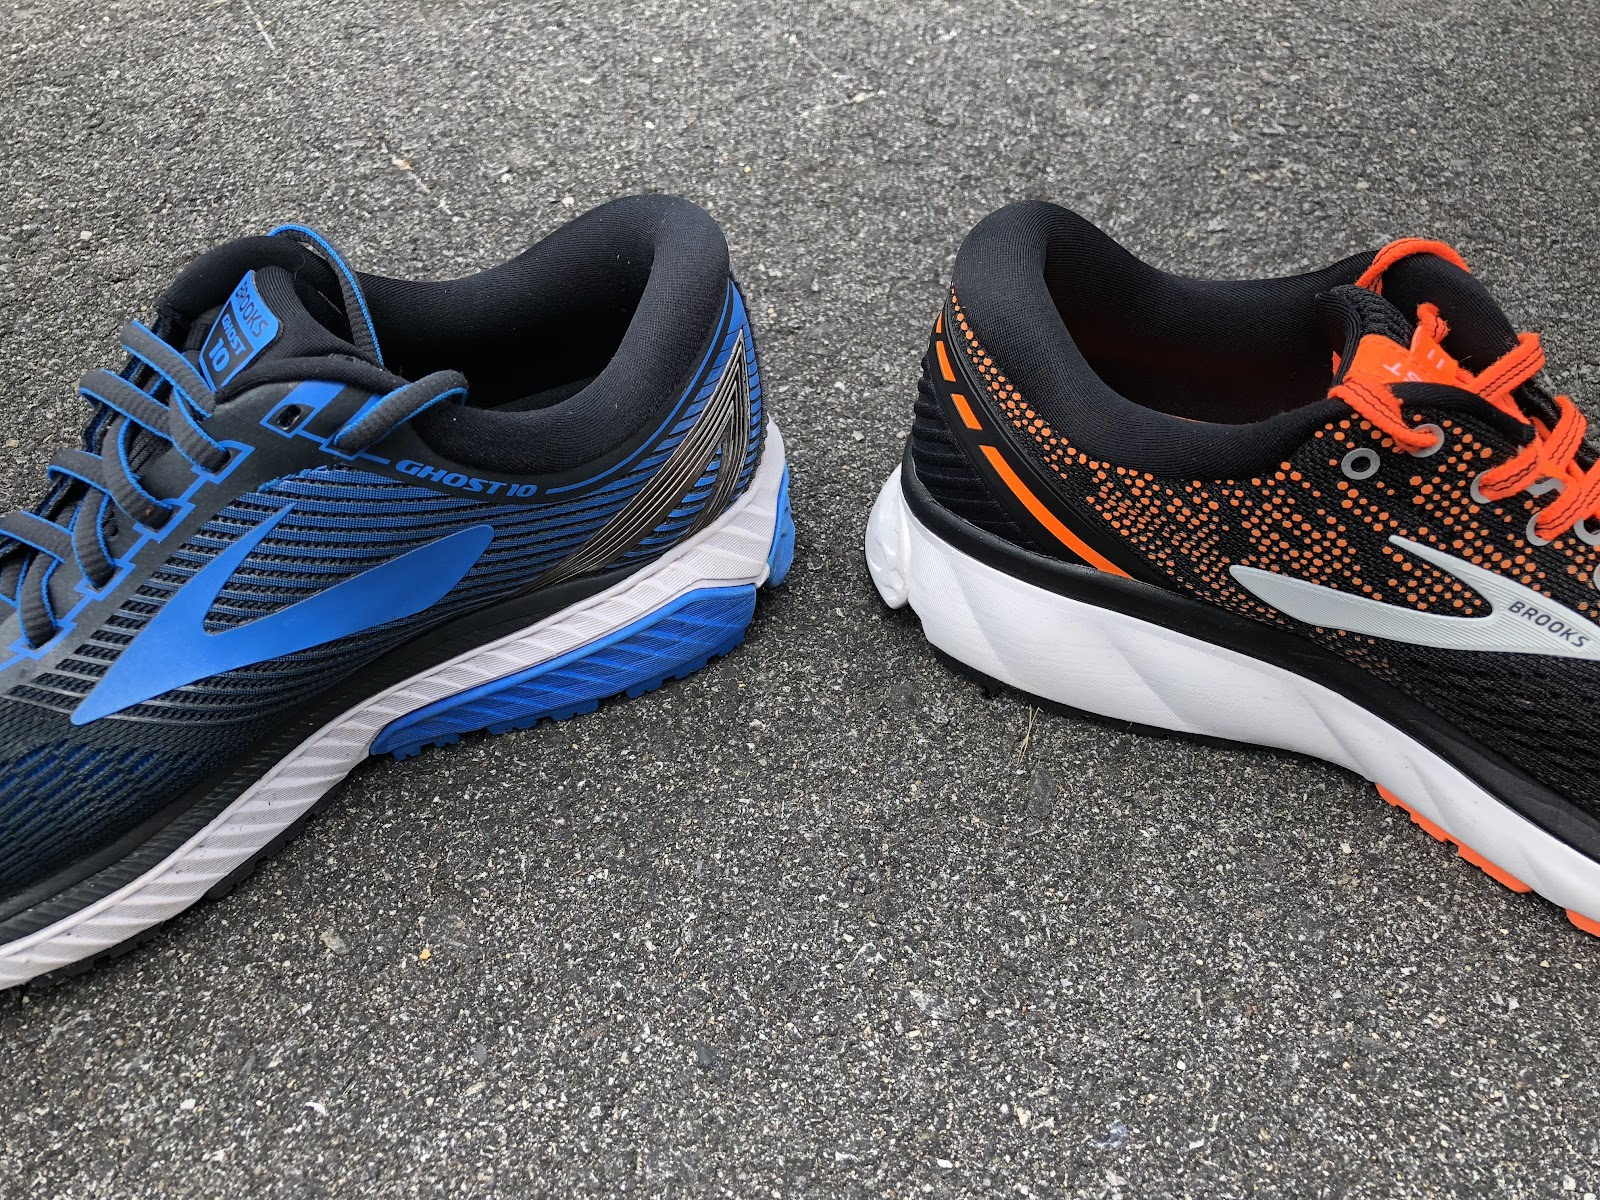 7d3a98c5476 Road Trail Run  Brooks Running Ghost 11 Review  Top to Bottom ...